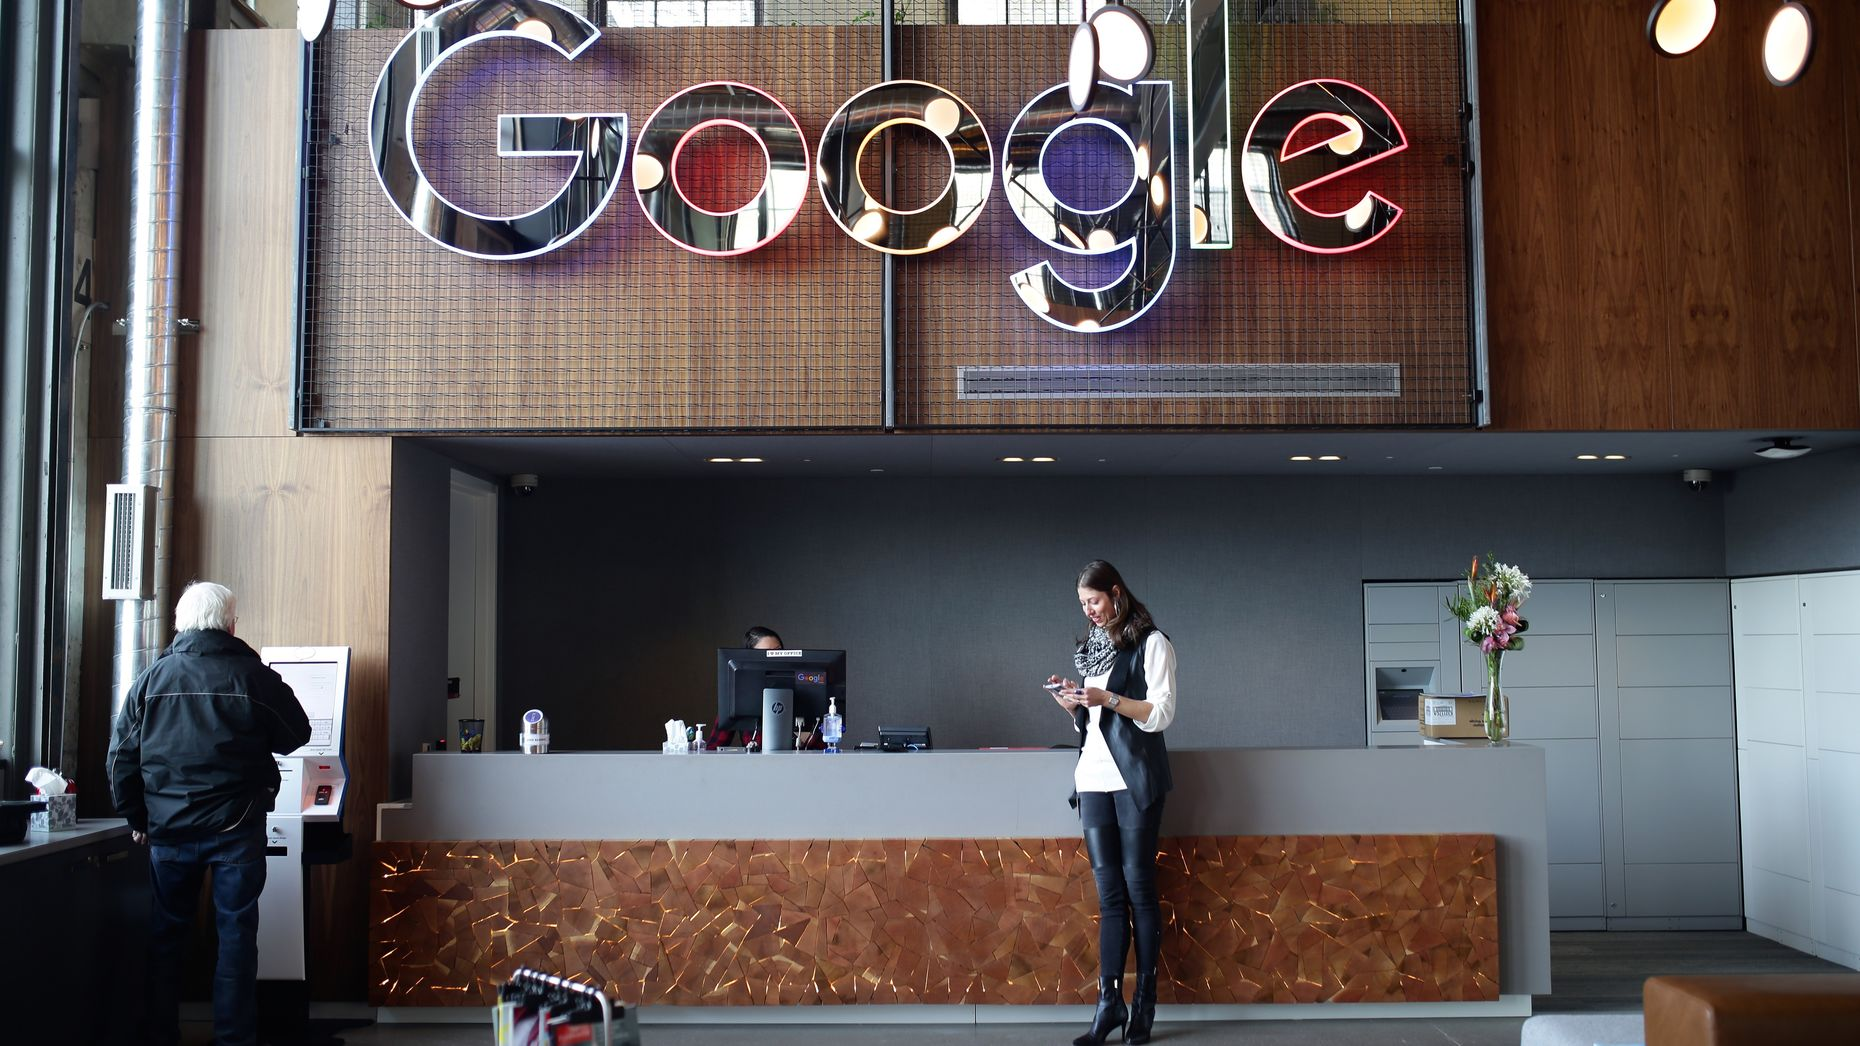 Google office photo by Bloomberg.